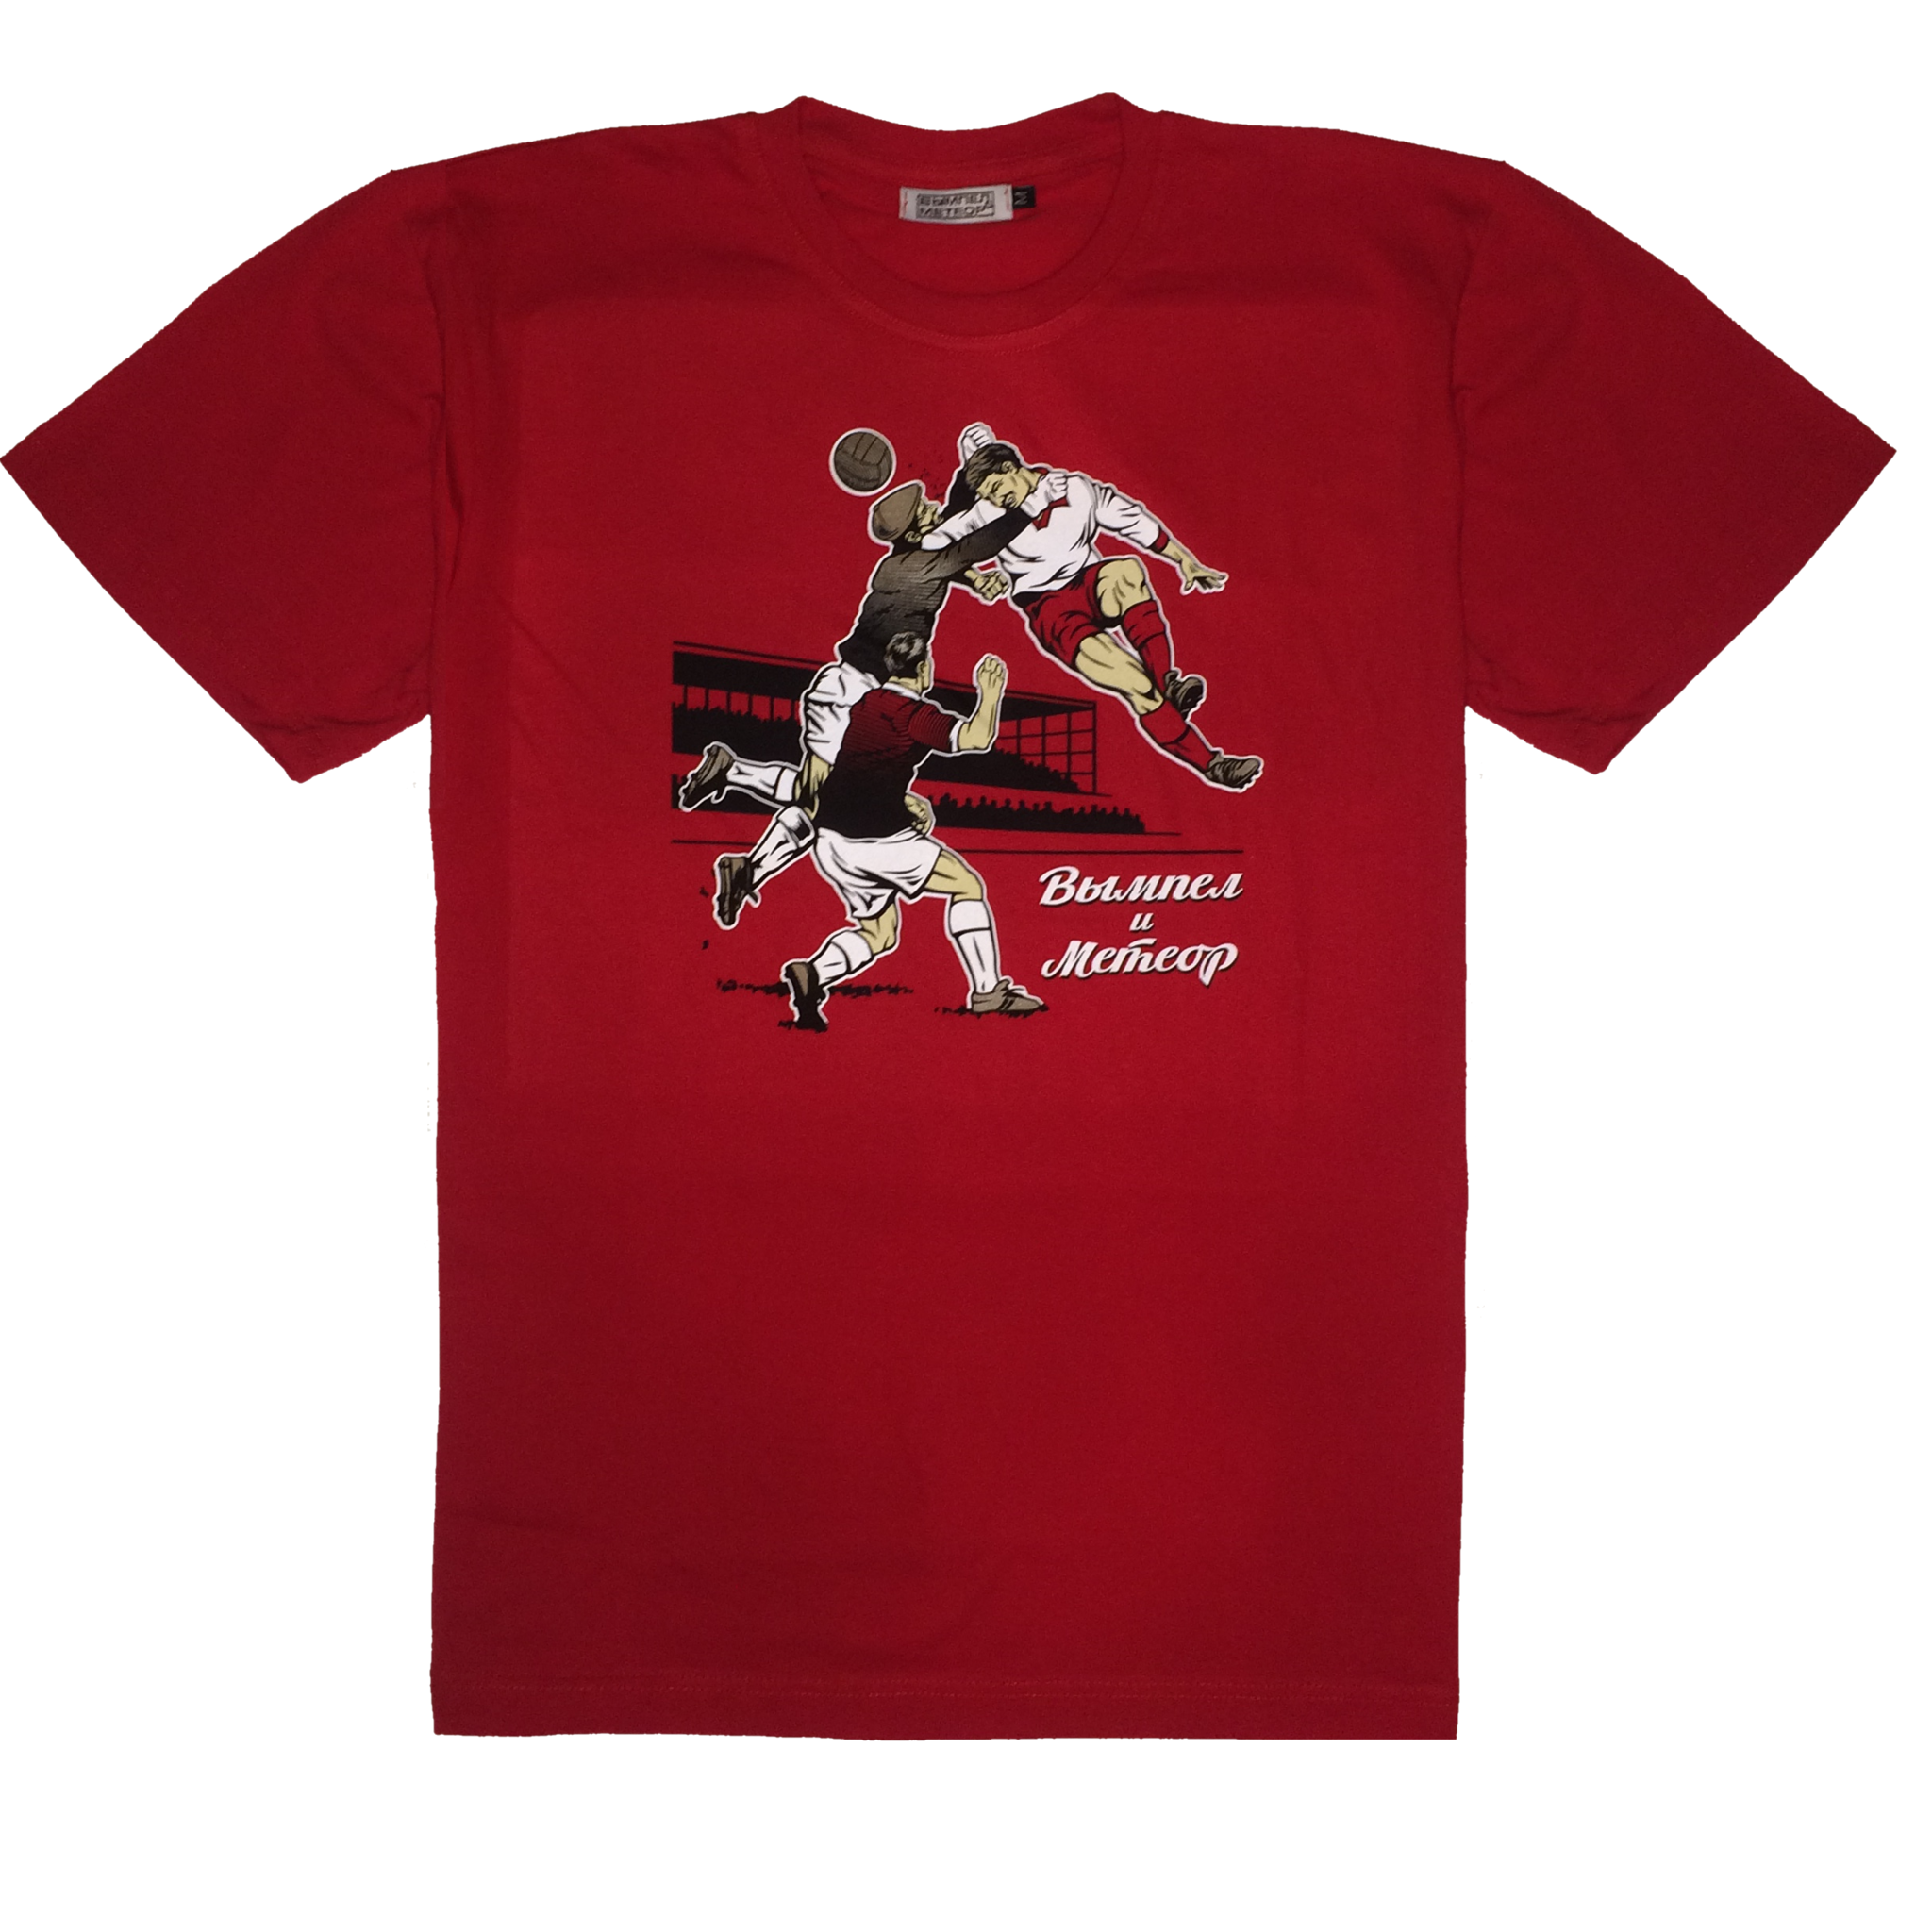 Clash red t-shirt